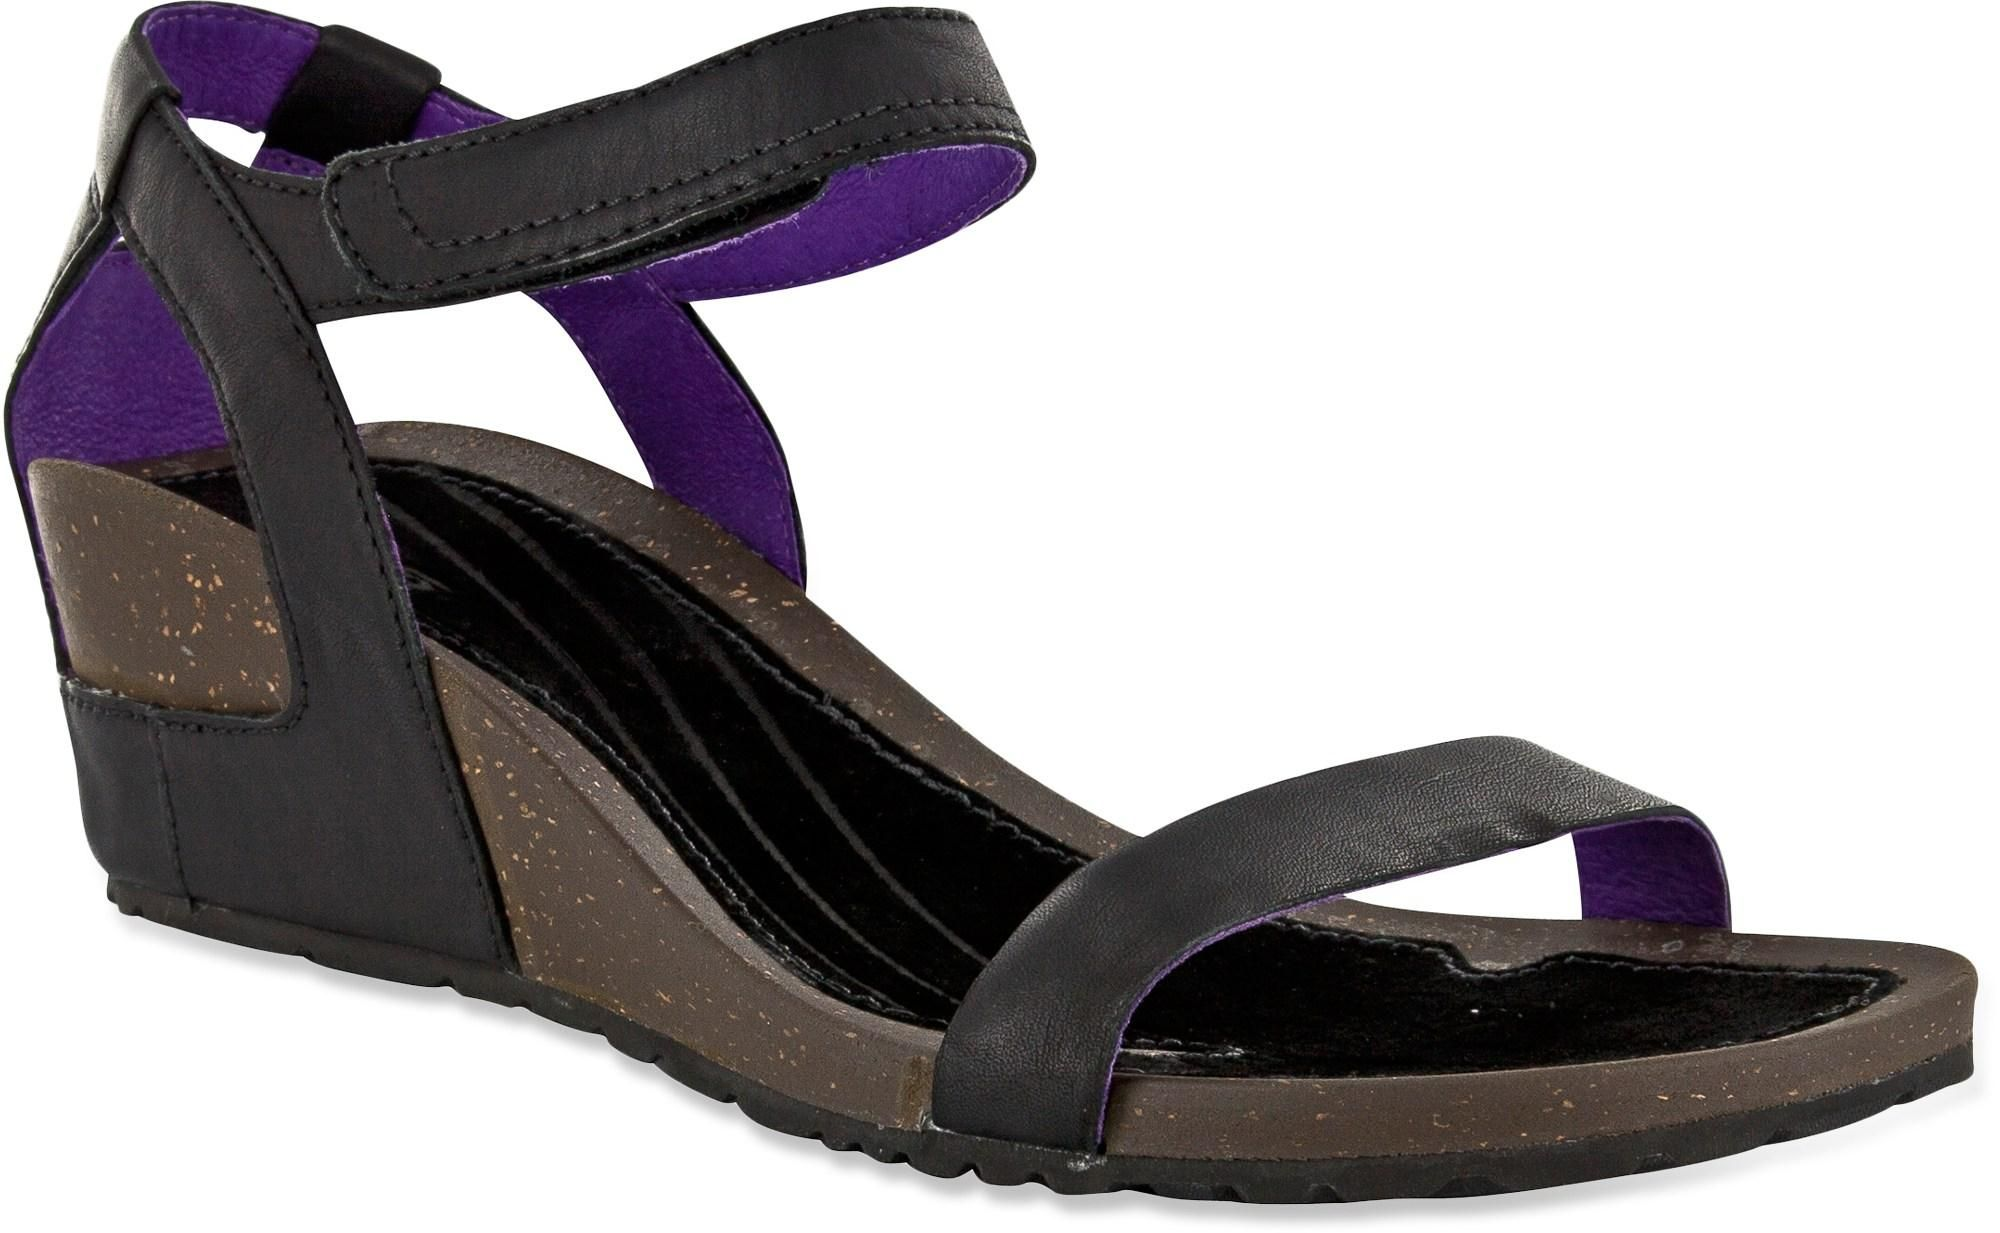 e374a0f4024063 Teva Cabrillo Strap Wedge Leather sandals offer a classic